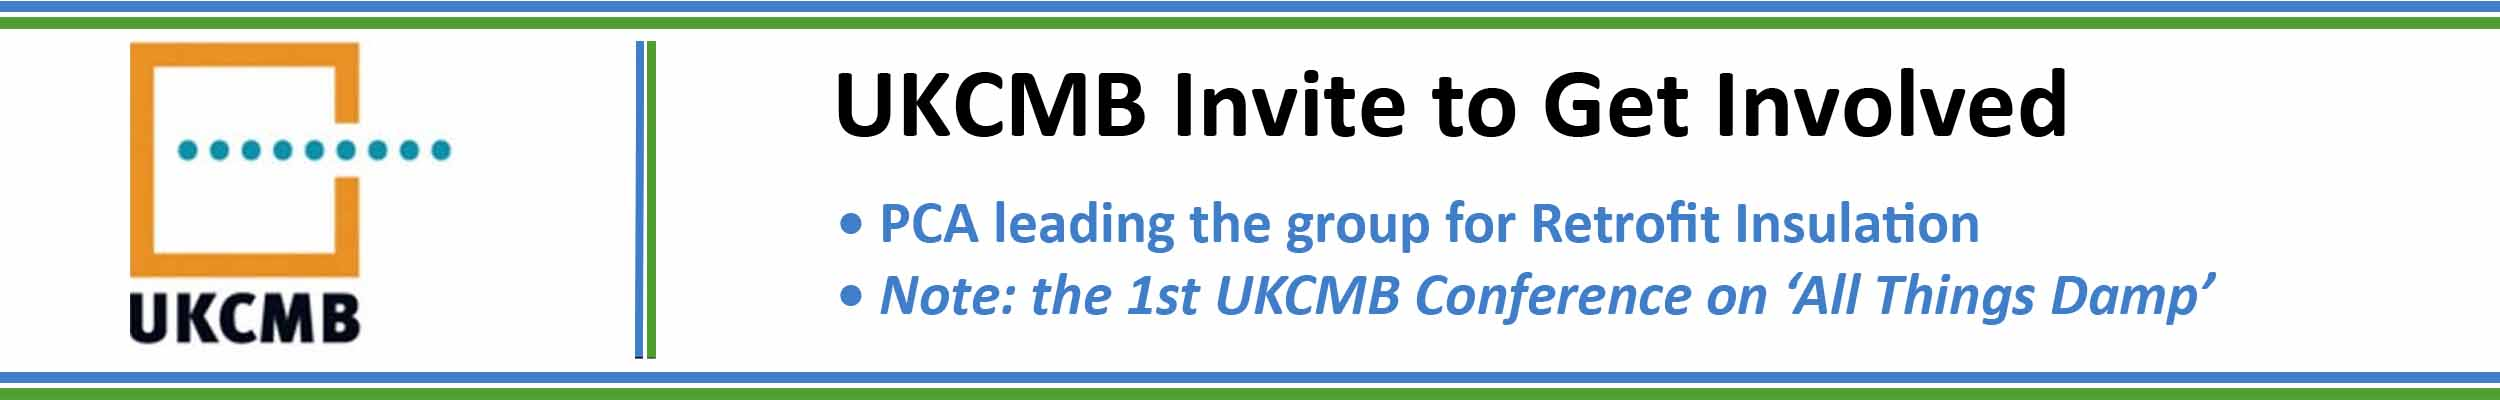 UKCMB invite to get involved - July 2019